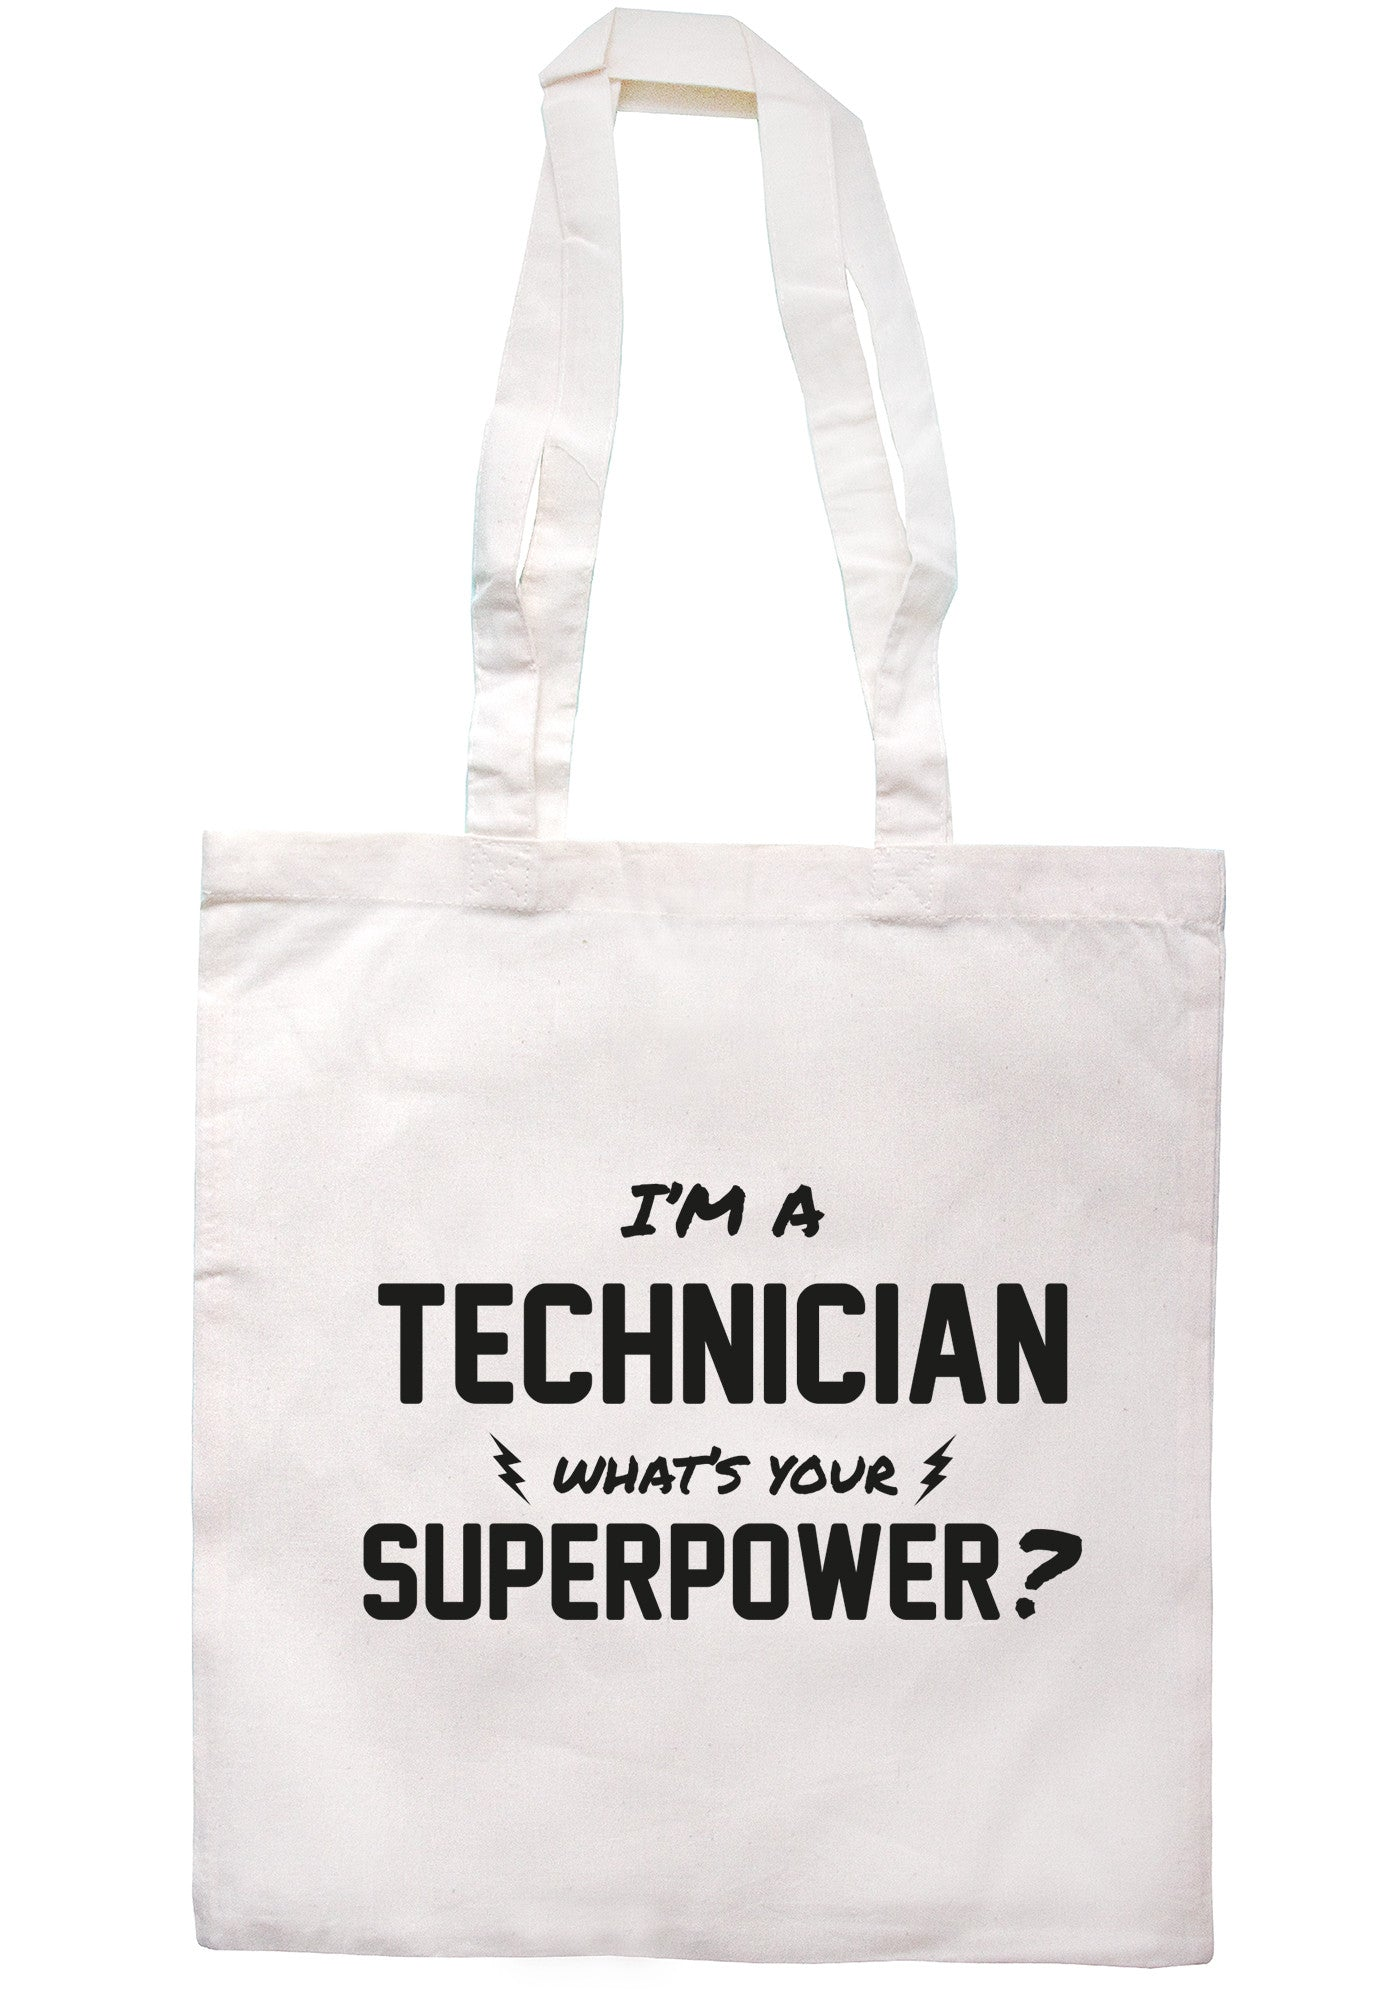 I'm A Technician What's Your Superpower? Tote Bag TB0504 - Illustrated Identity Ltd.